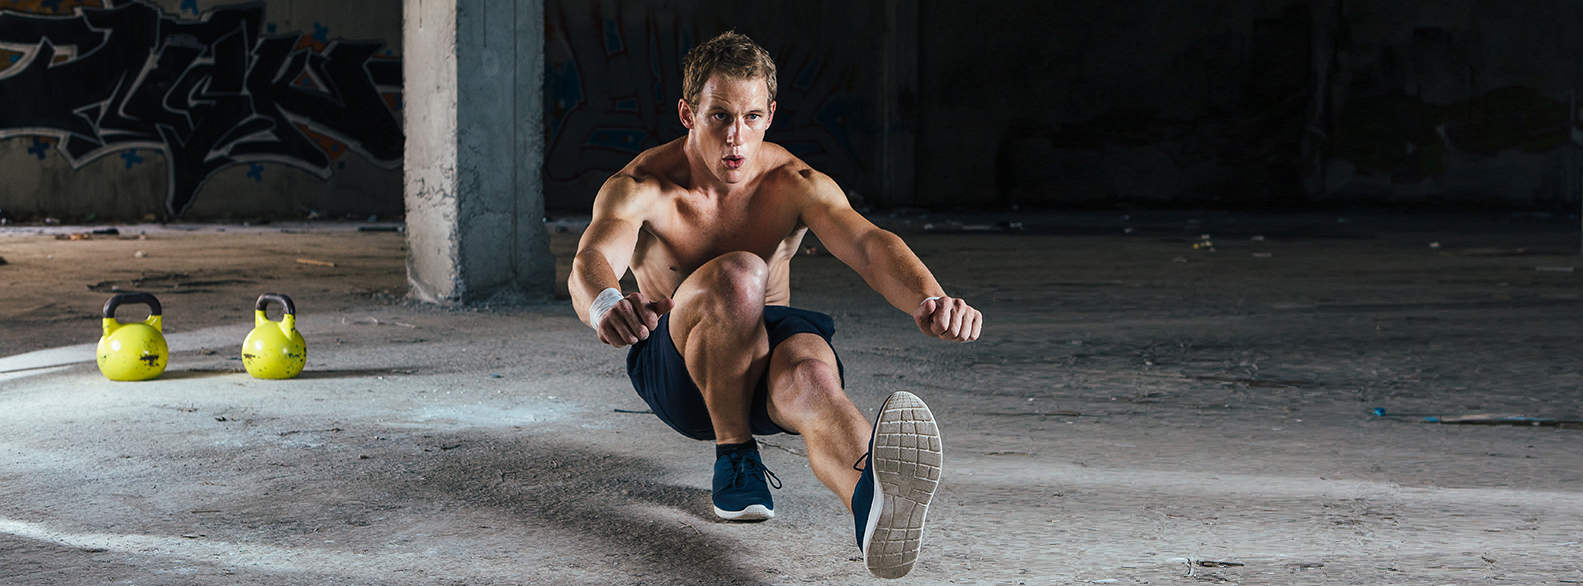 6 Best Leg Workouts: The Best Leg Day Workouts To Do